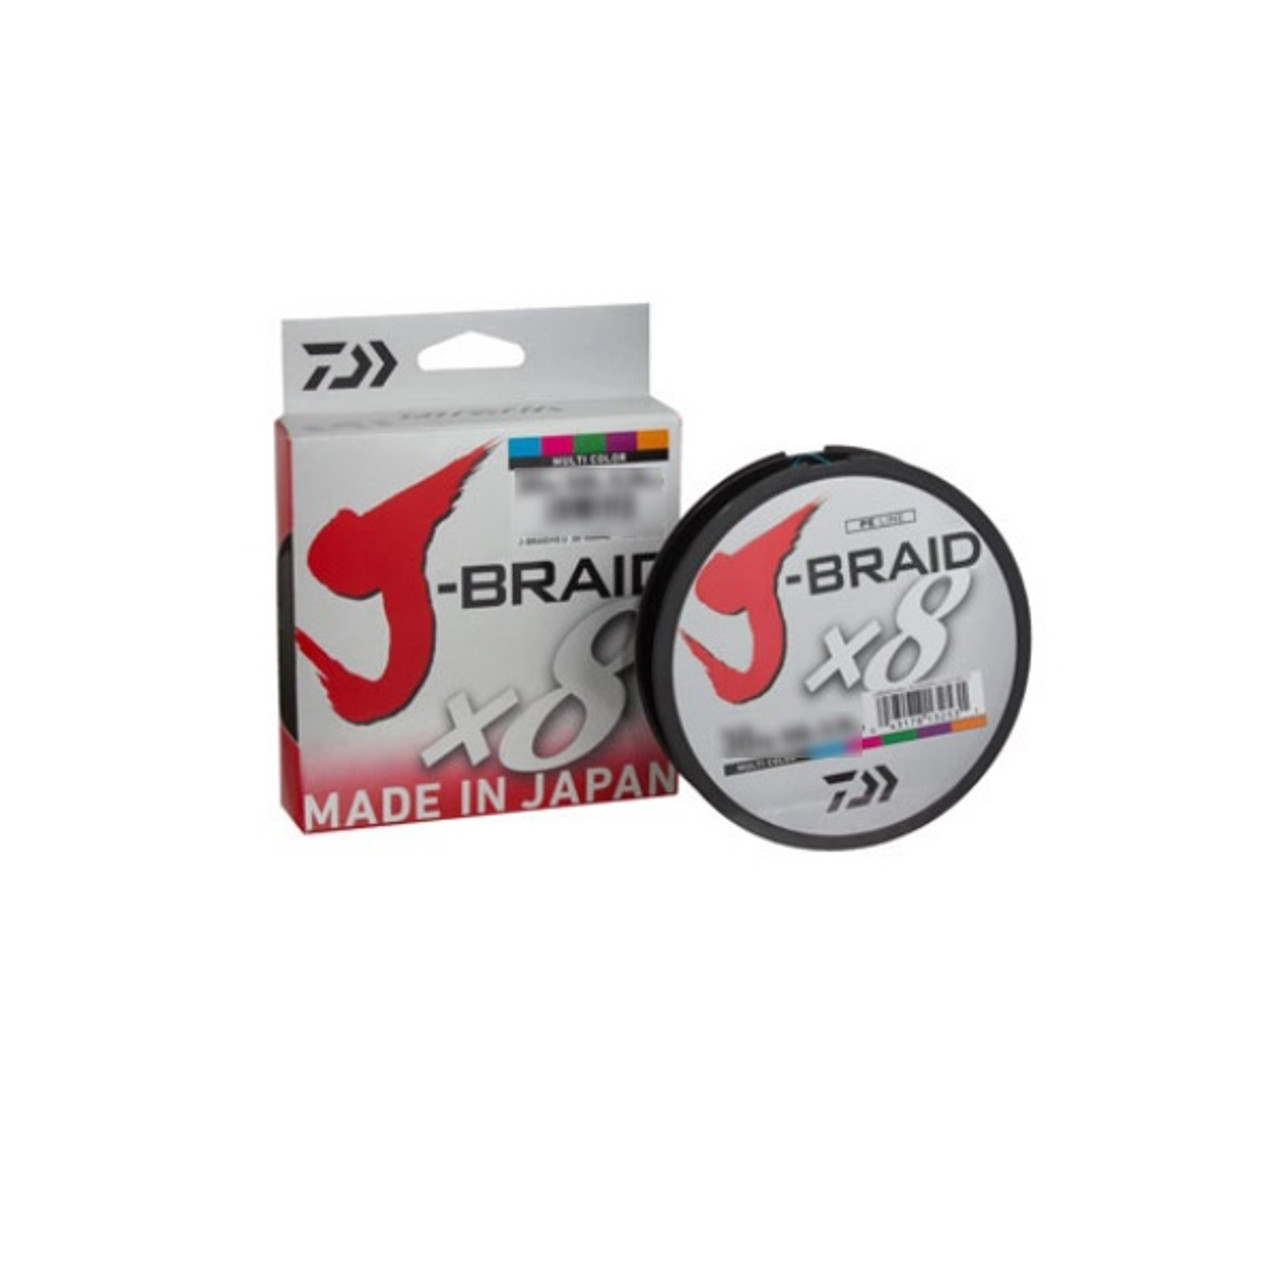 NEW DAIWA J-BRAID X8 FISHING LINE 300m SPOOL ALL COLOURS AND BREAKING STRAINS...